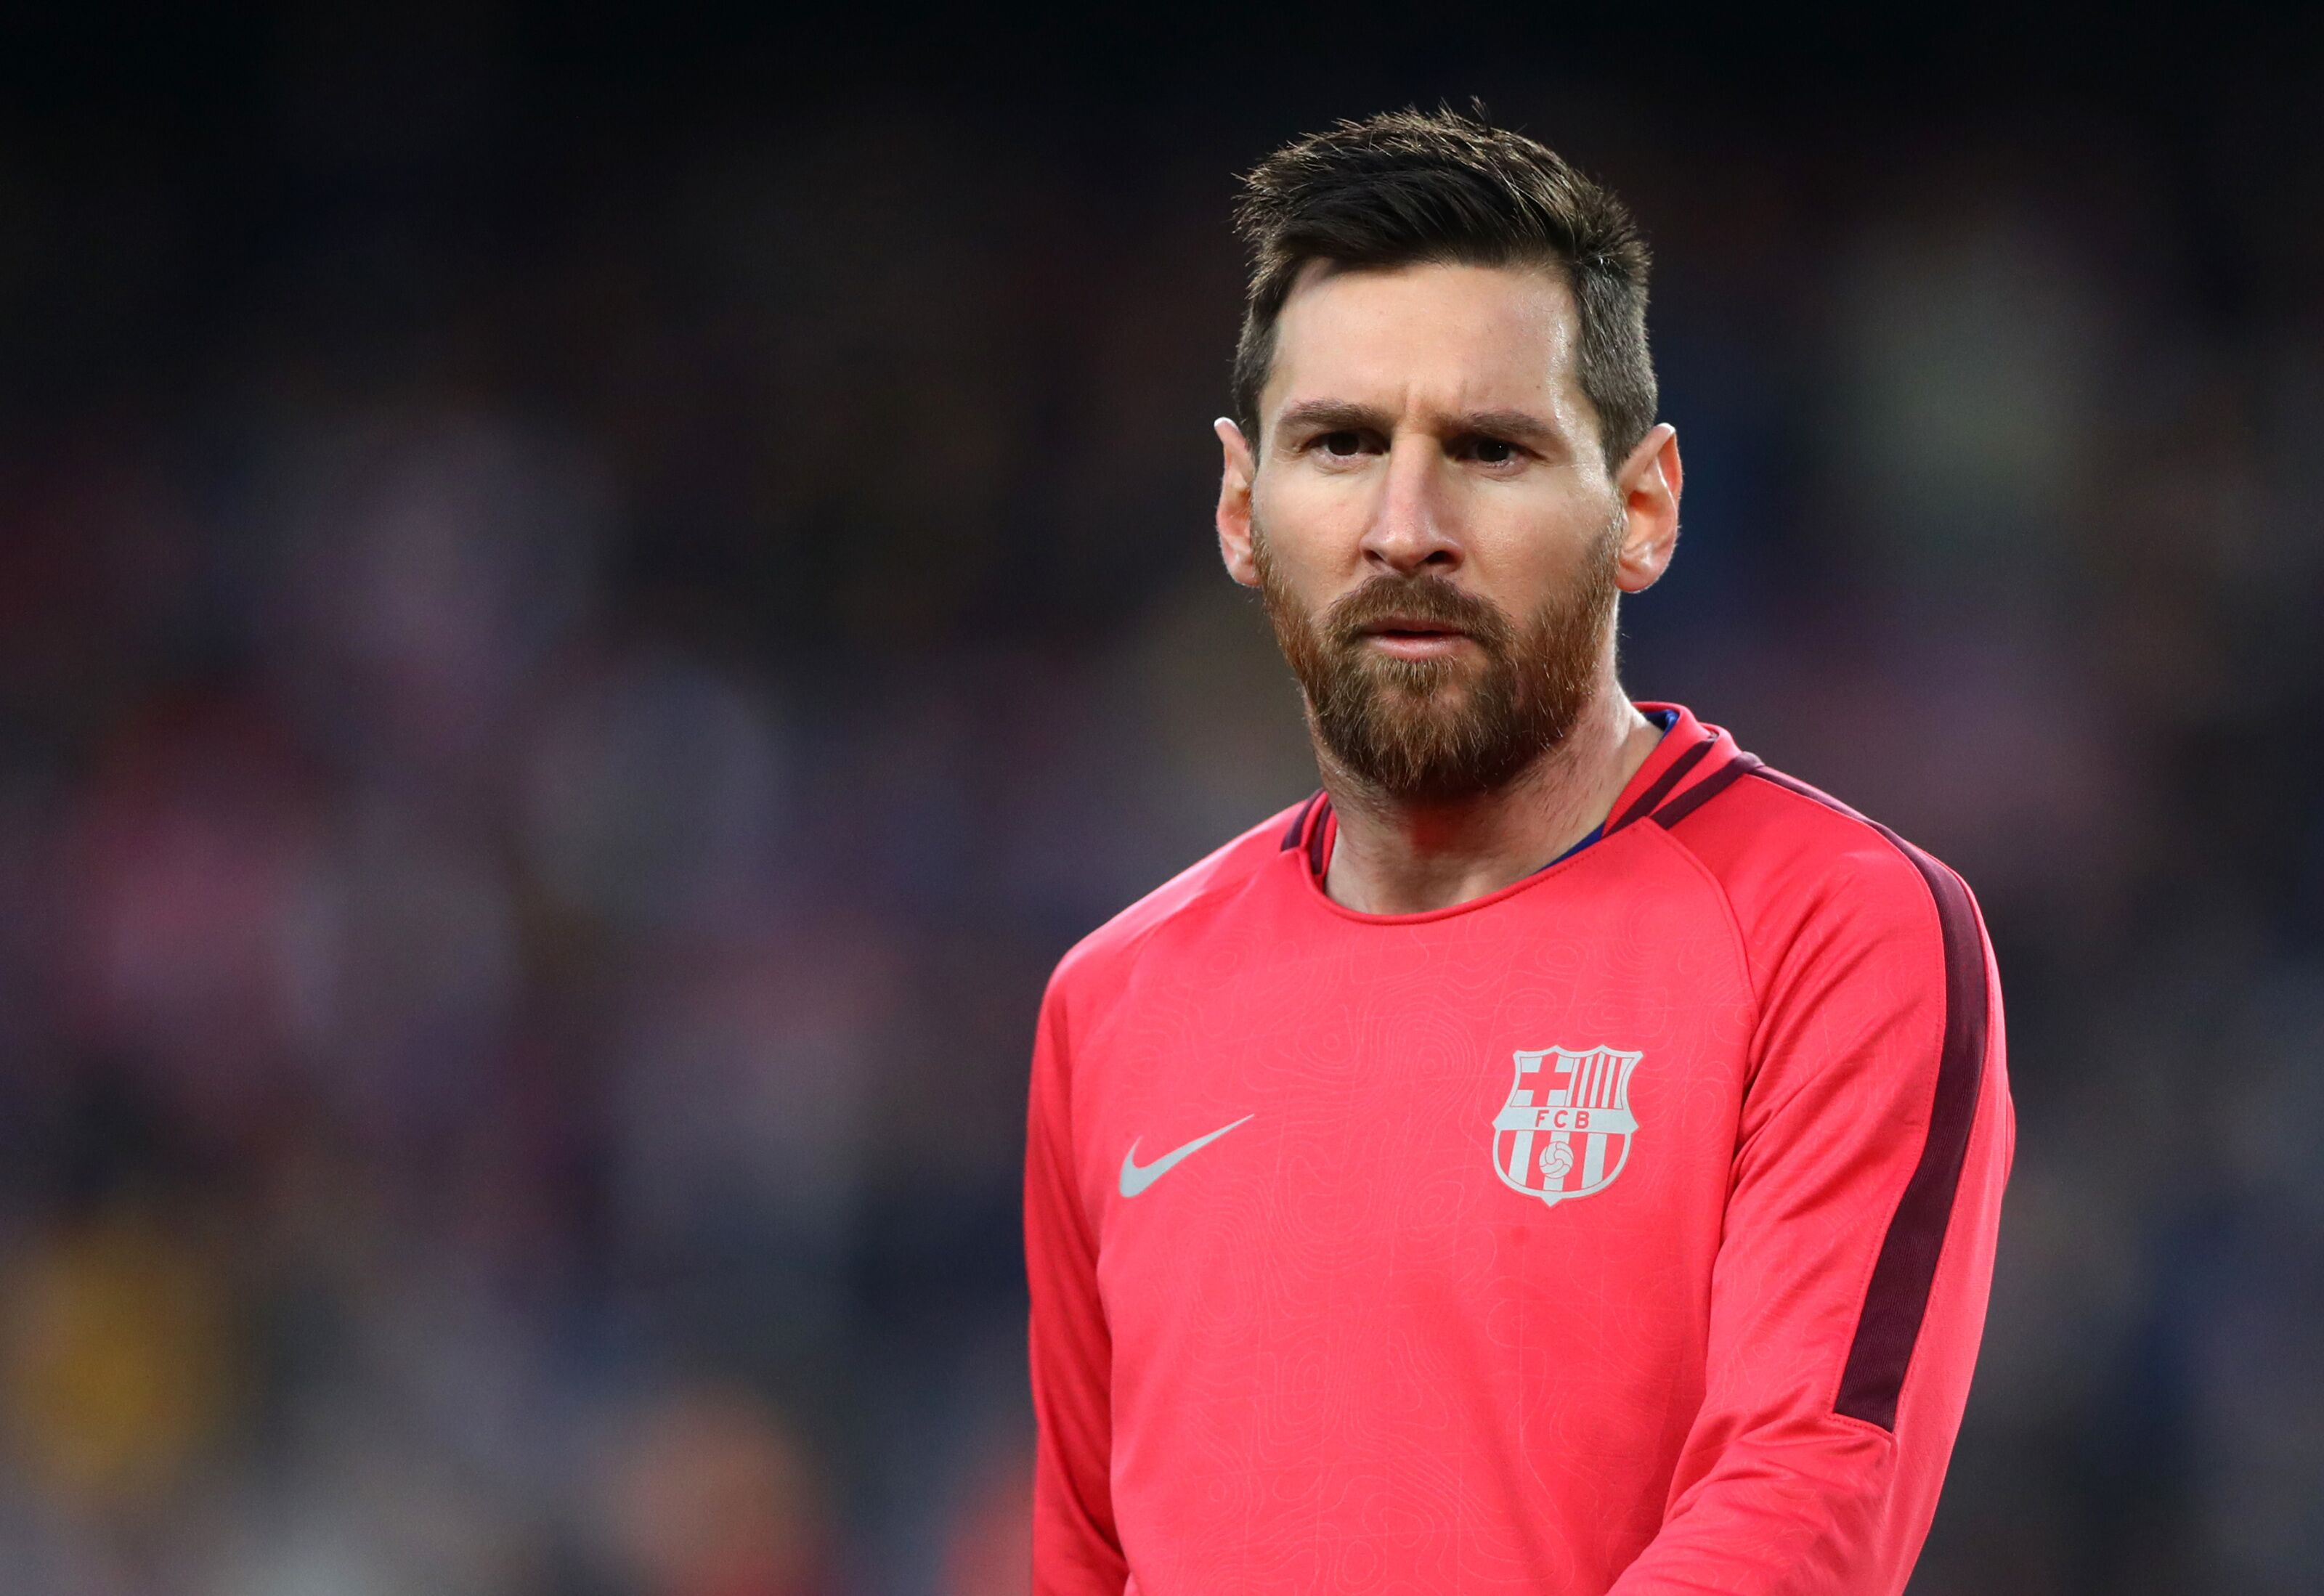 Lionel Messi wants Barcelona to sign his international teammate